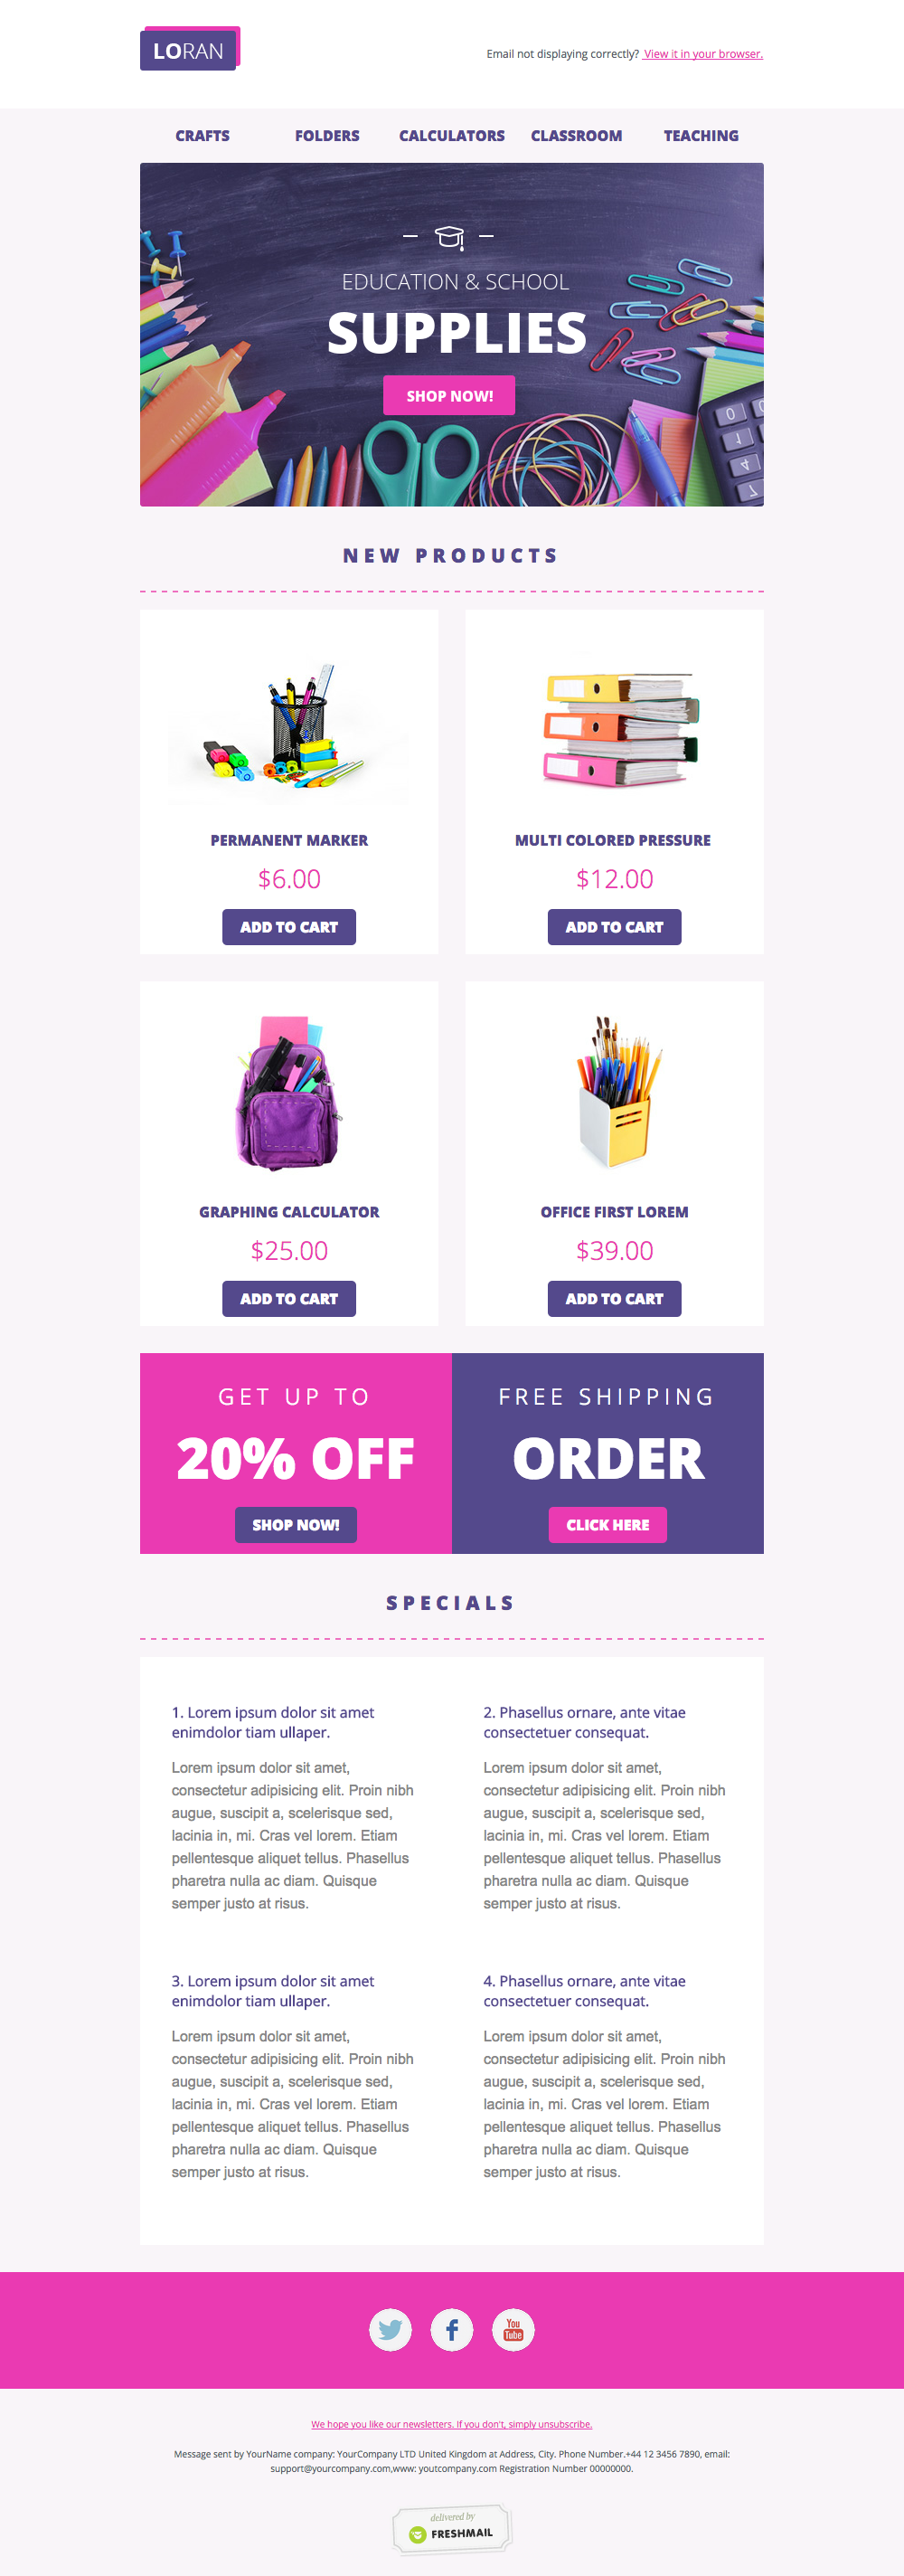 Office Depot ECommerce Newsletter Design Ideas  Examples For